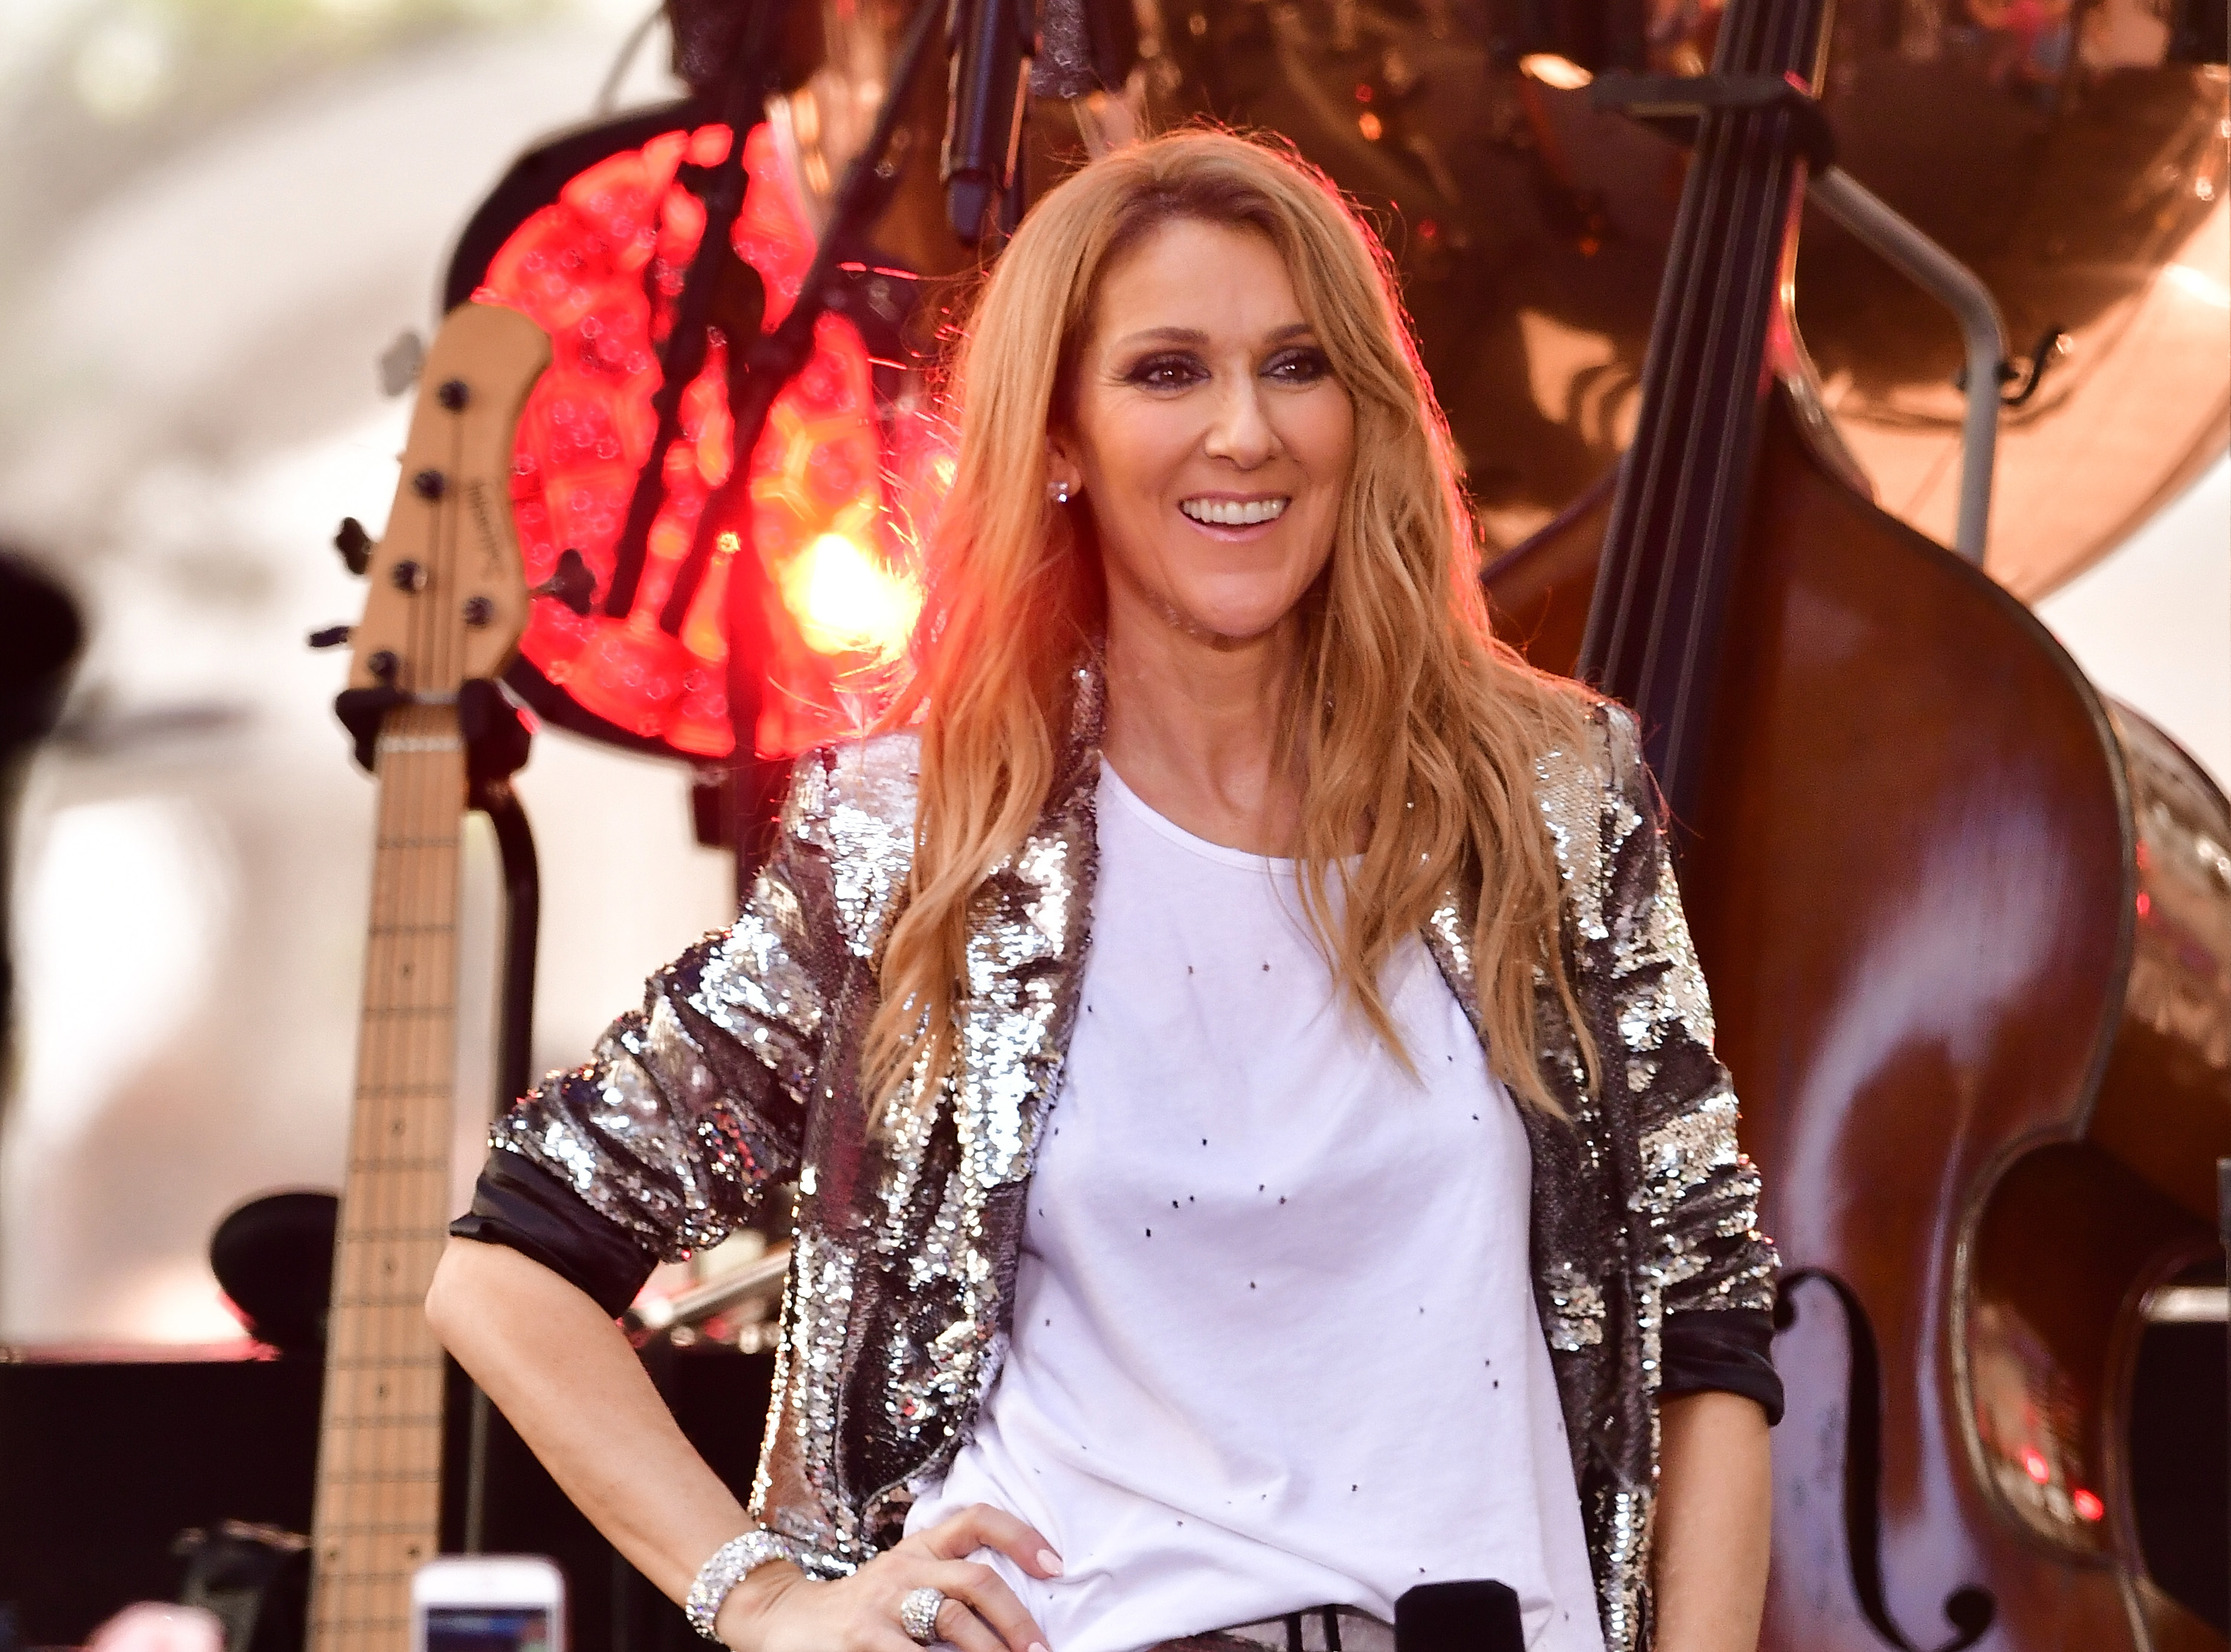 Celine Dion just covered Britney Spears, Nelly, and Missy Elliot and it's as brilliant as it sounds